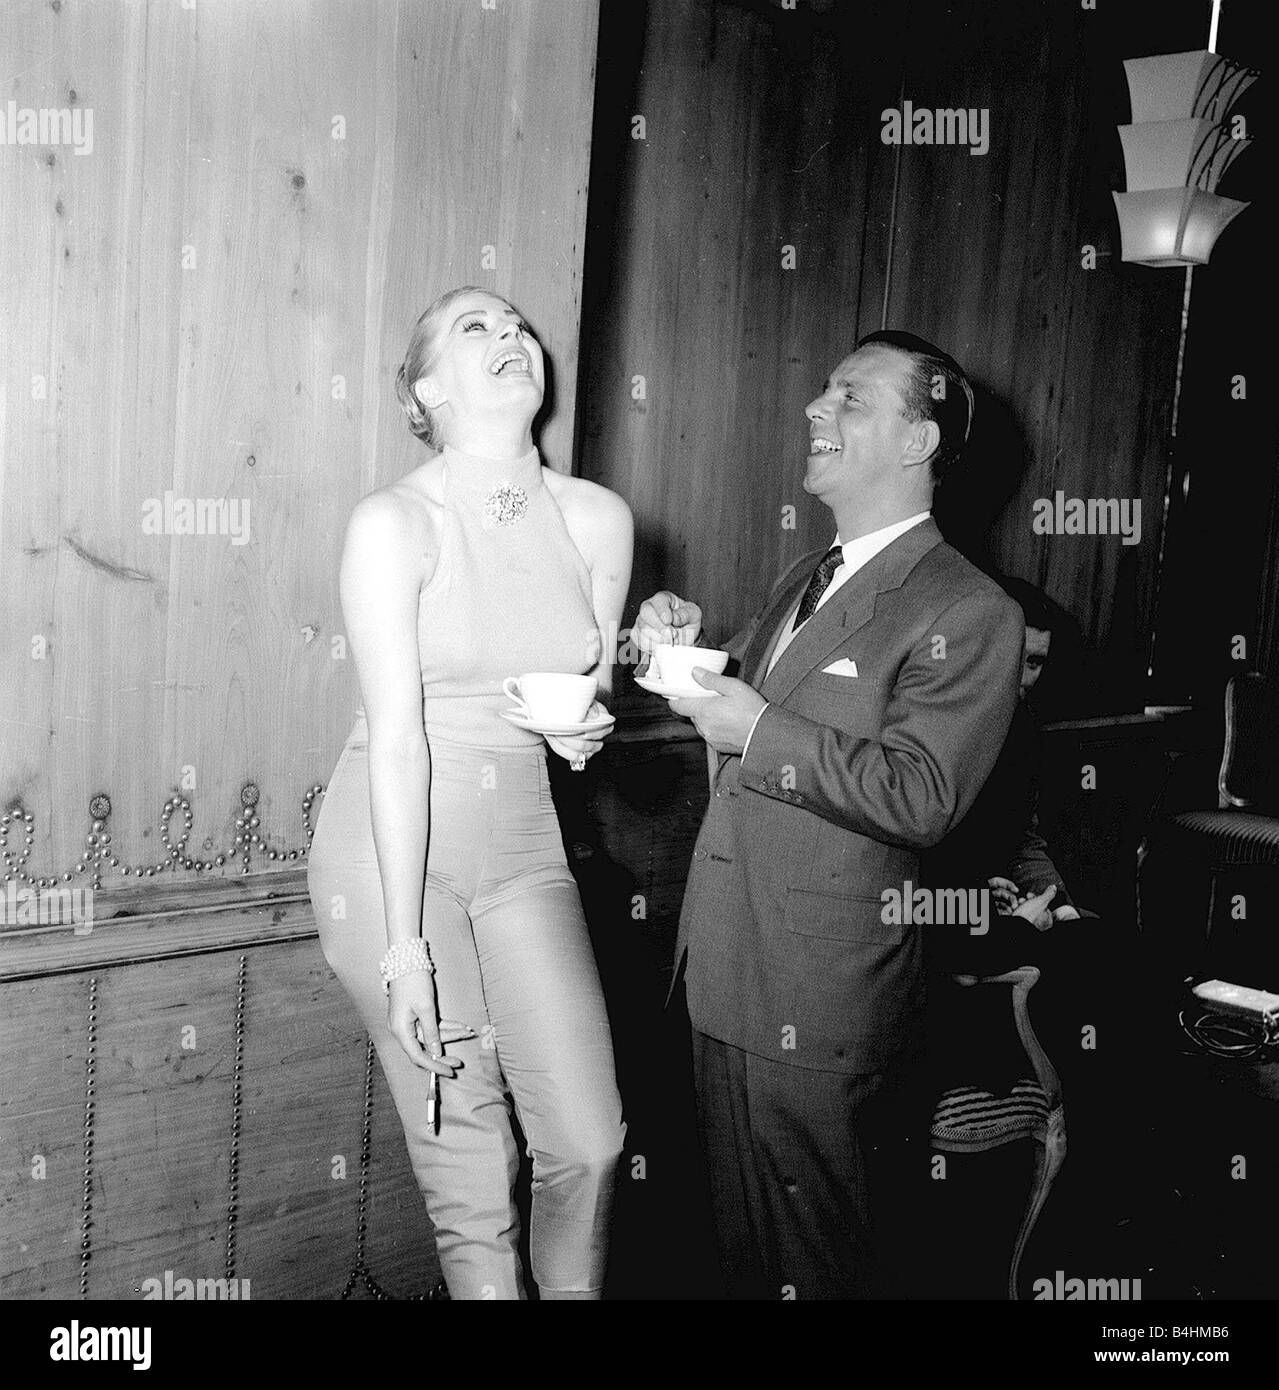 Actor and comedian Norman Wisdom with actress Anita Ekberg at the savoy Hotel in London May 1956 - Stock Image